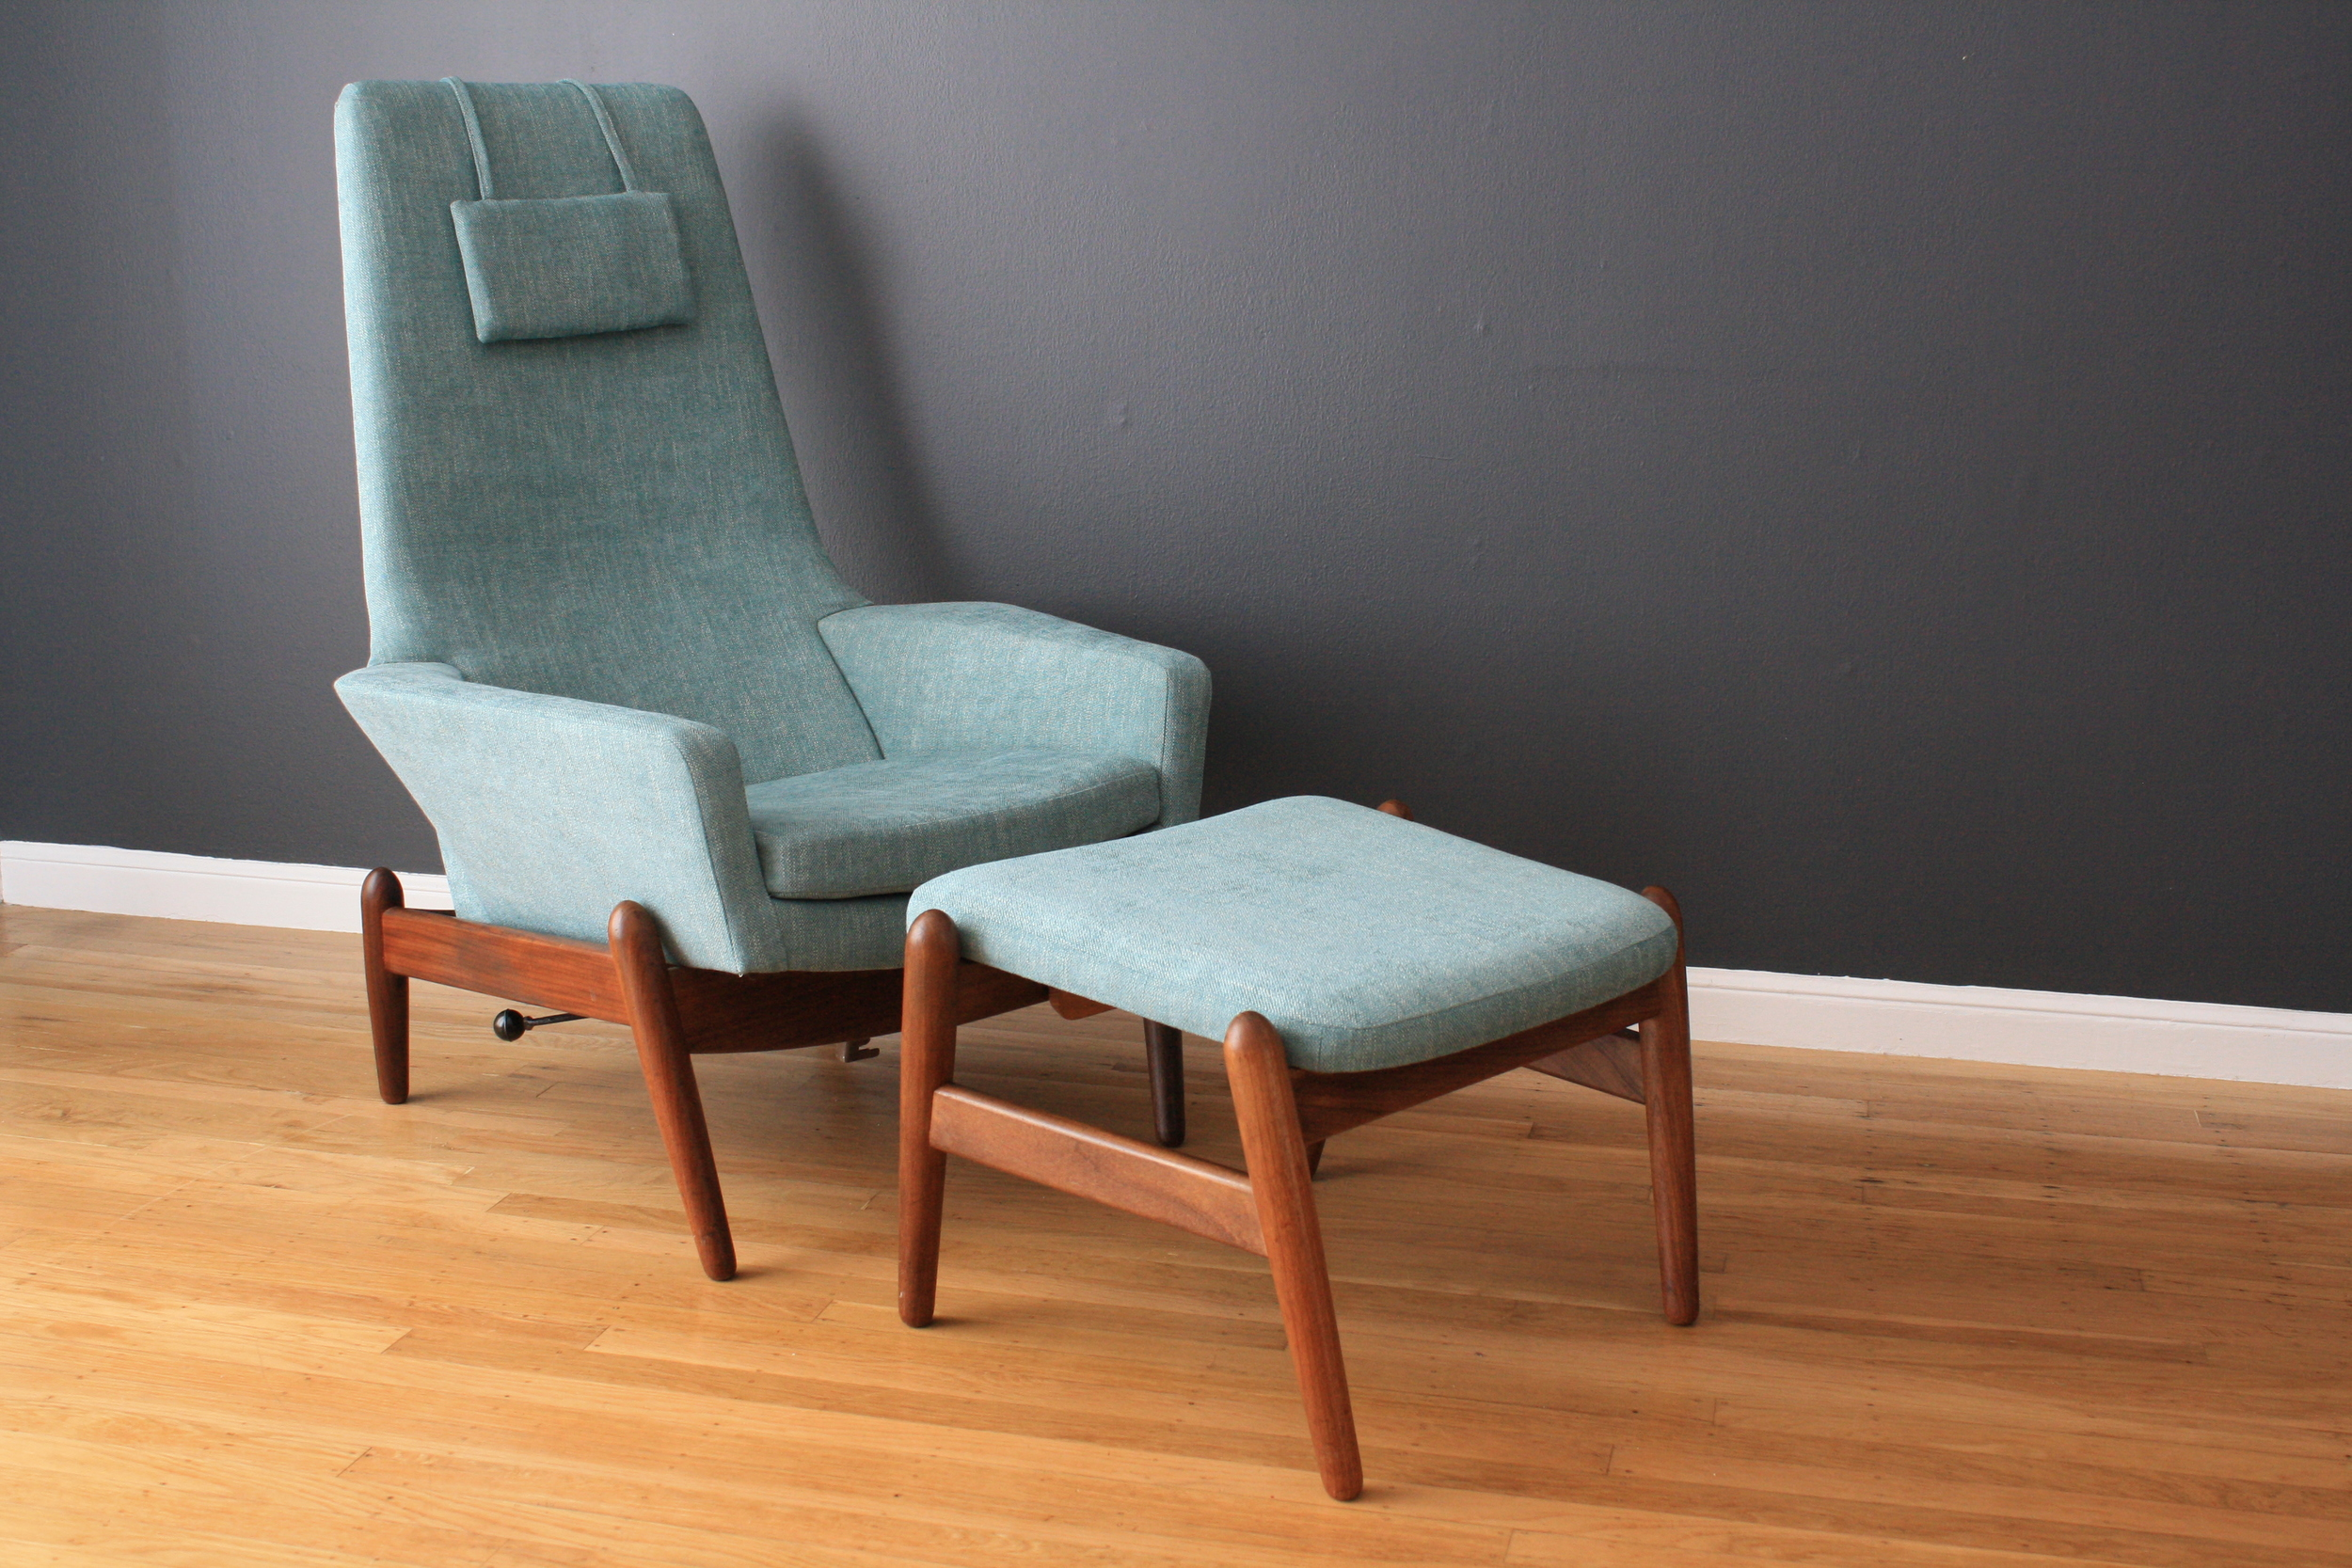 Copy of Adrian Pearsall Lounge Chair